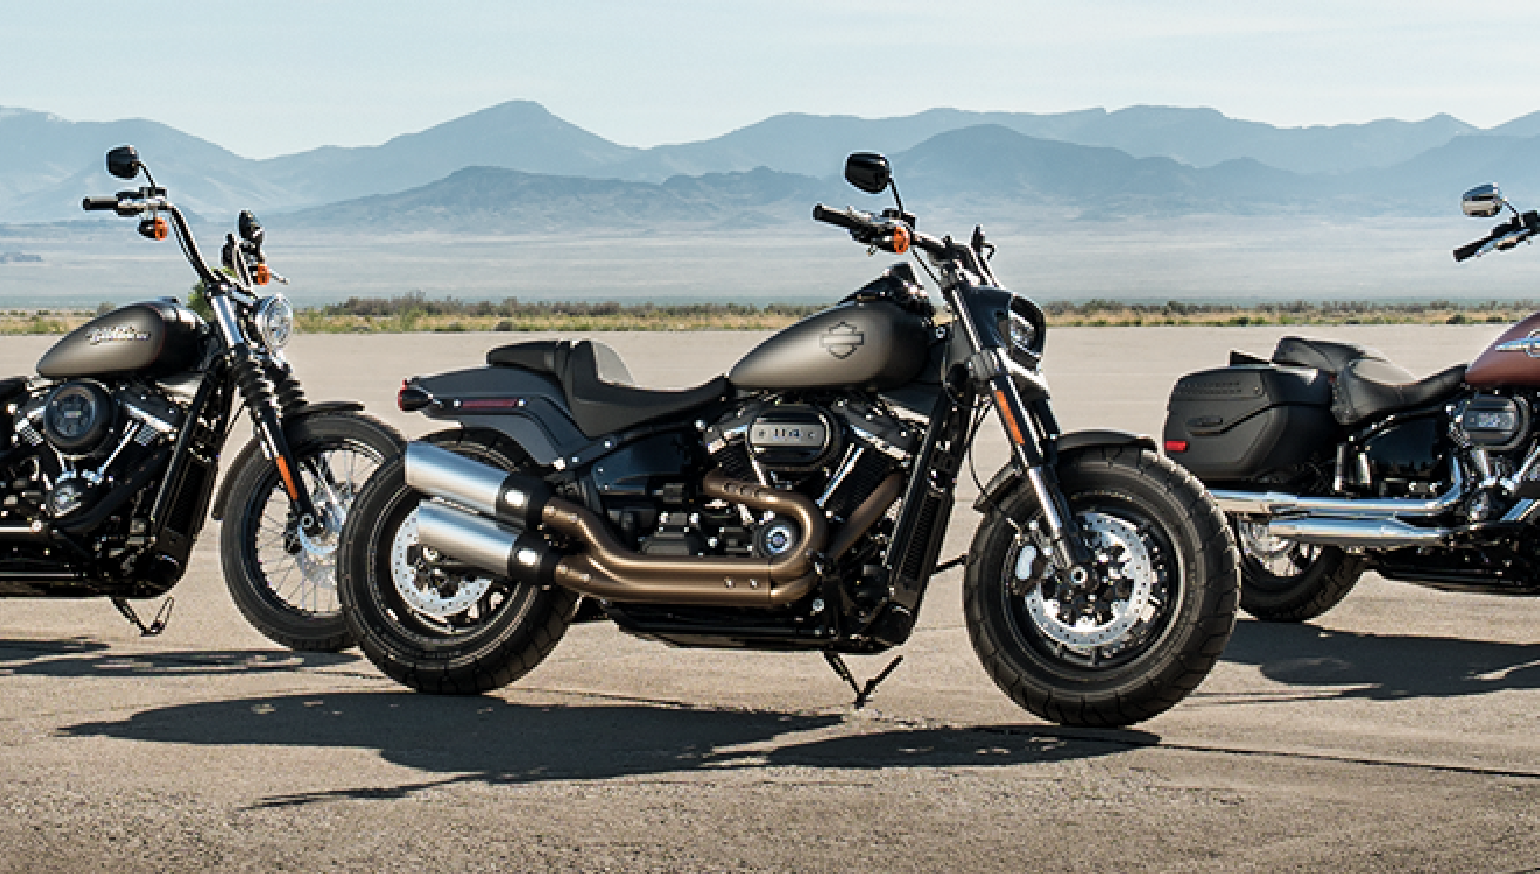 Harley-Davidson releases all-new Softail line, kills Dyna